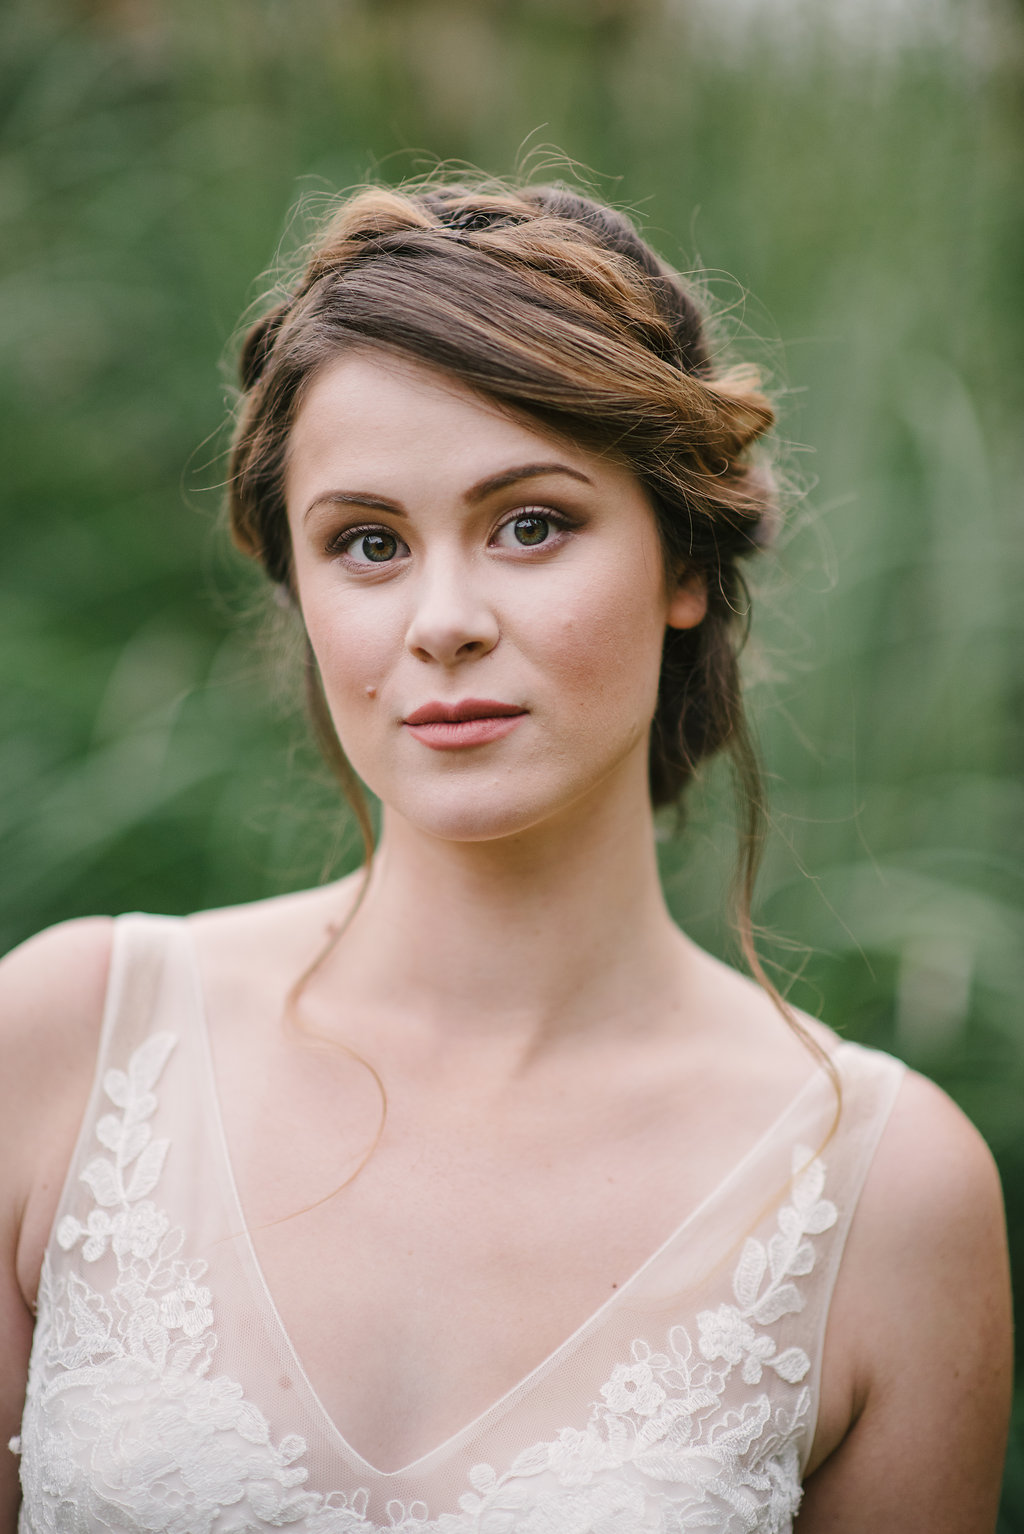 BHLDN R  eagan Wedding Dress - Fall Wedding Bouquet - Vintage Bridal Hairstyle - STYLED WEDDING SHOOT | A Romantic Vintage Fall Wedding